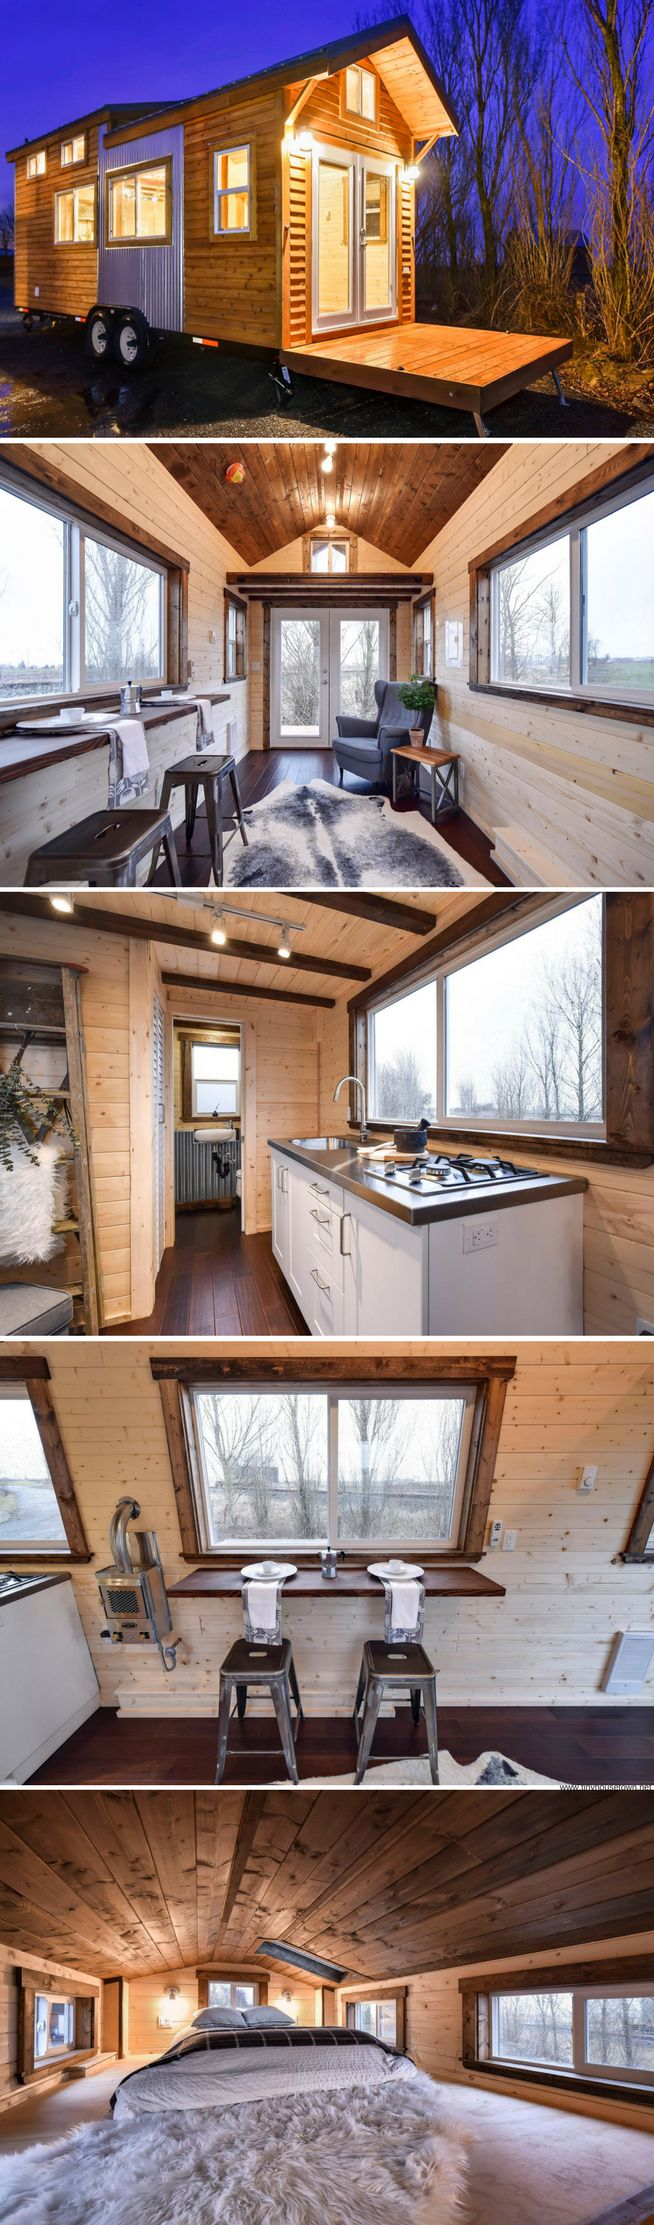 The Napa Edition tiny house